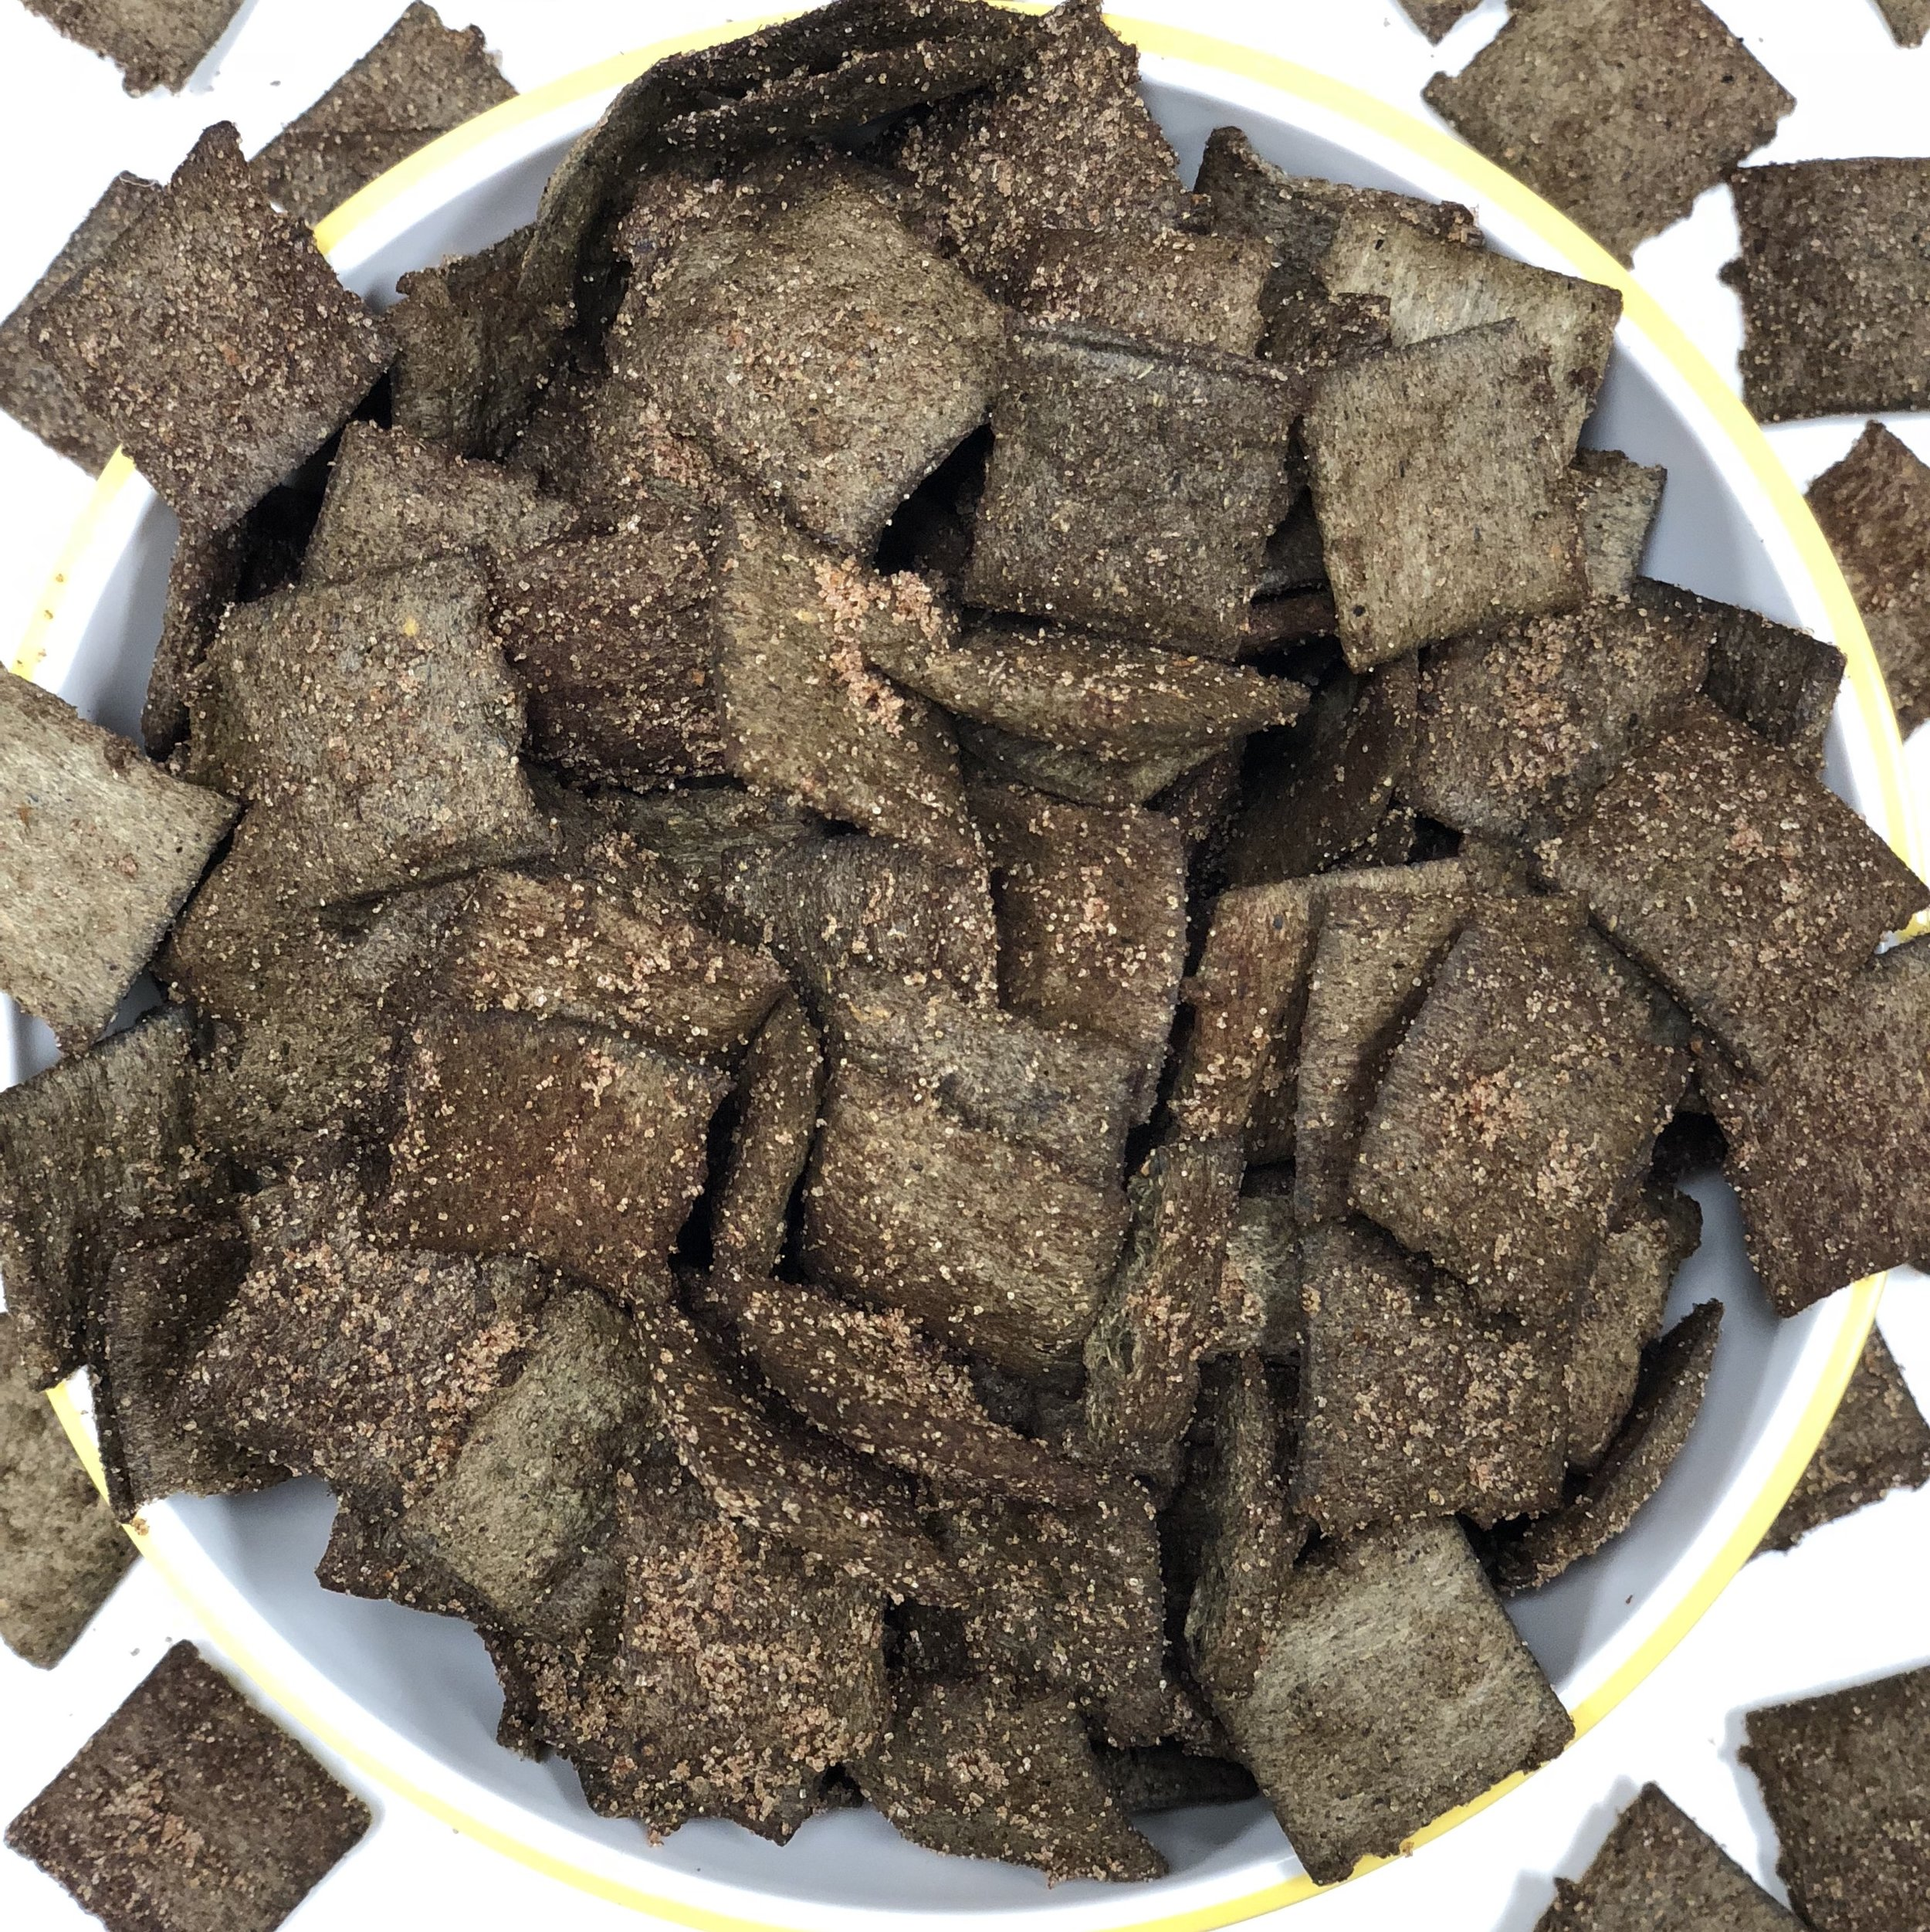 Claims - Good Source of ProteinExcellent Source of FiberGluten-FreeGrain-FreeAffordableSustainable